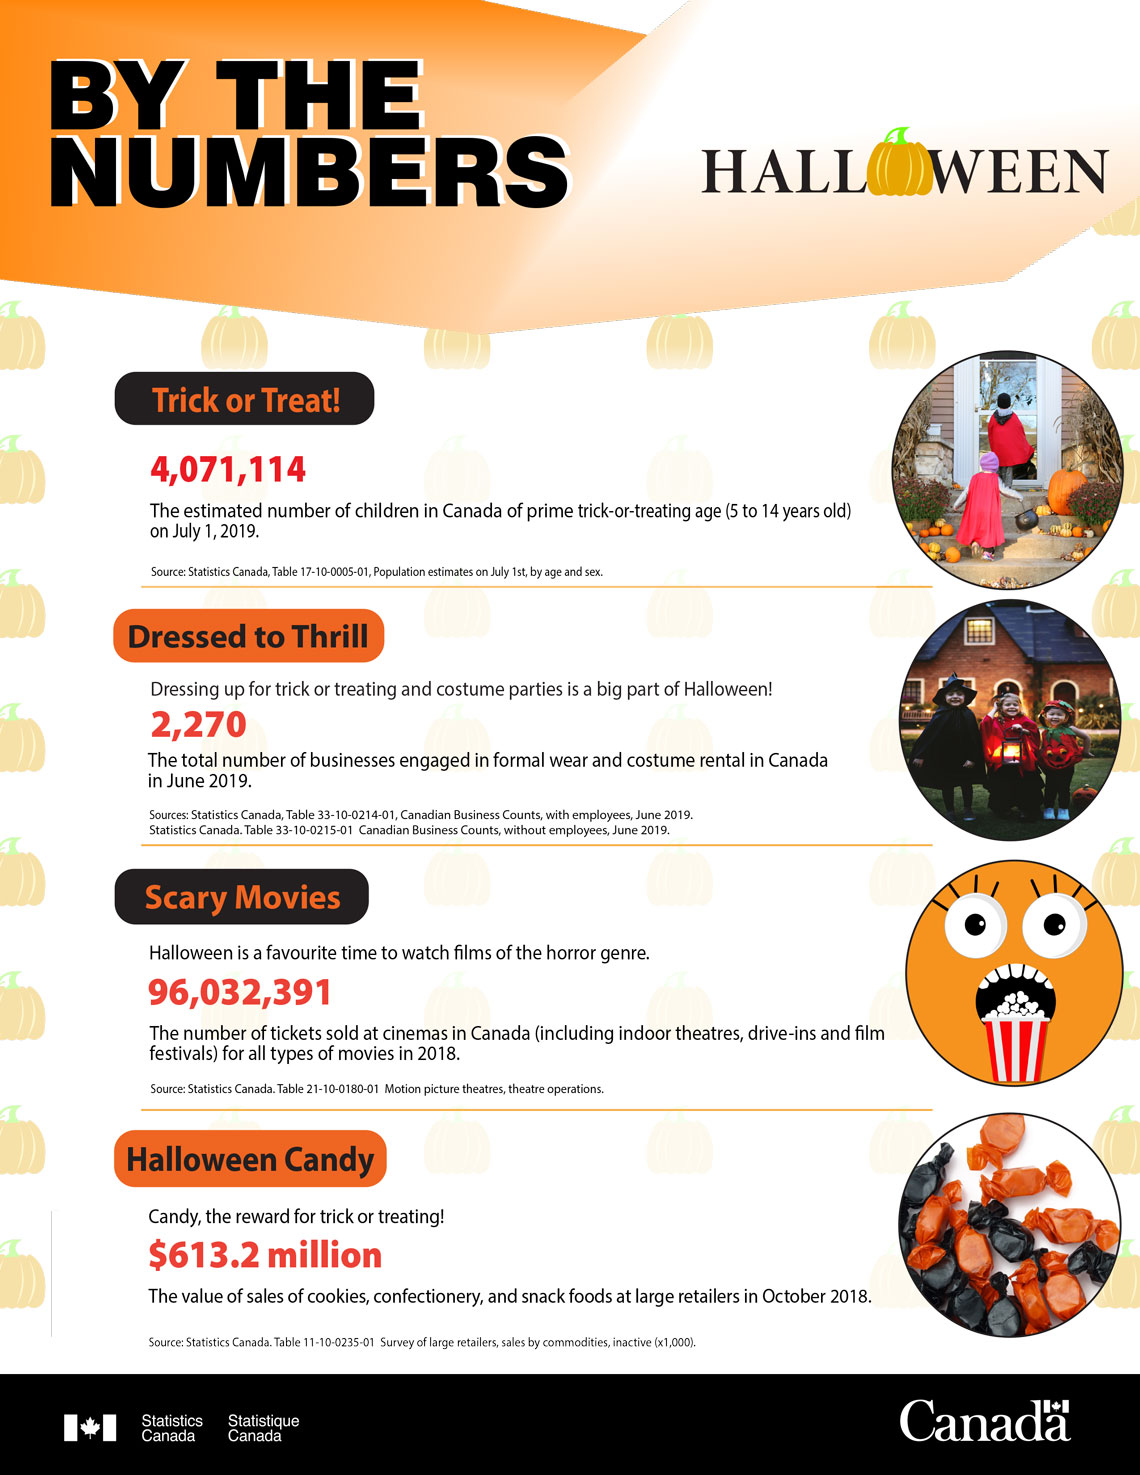 By the numbers - Halloween 2019